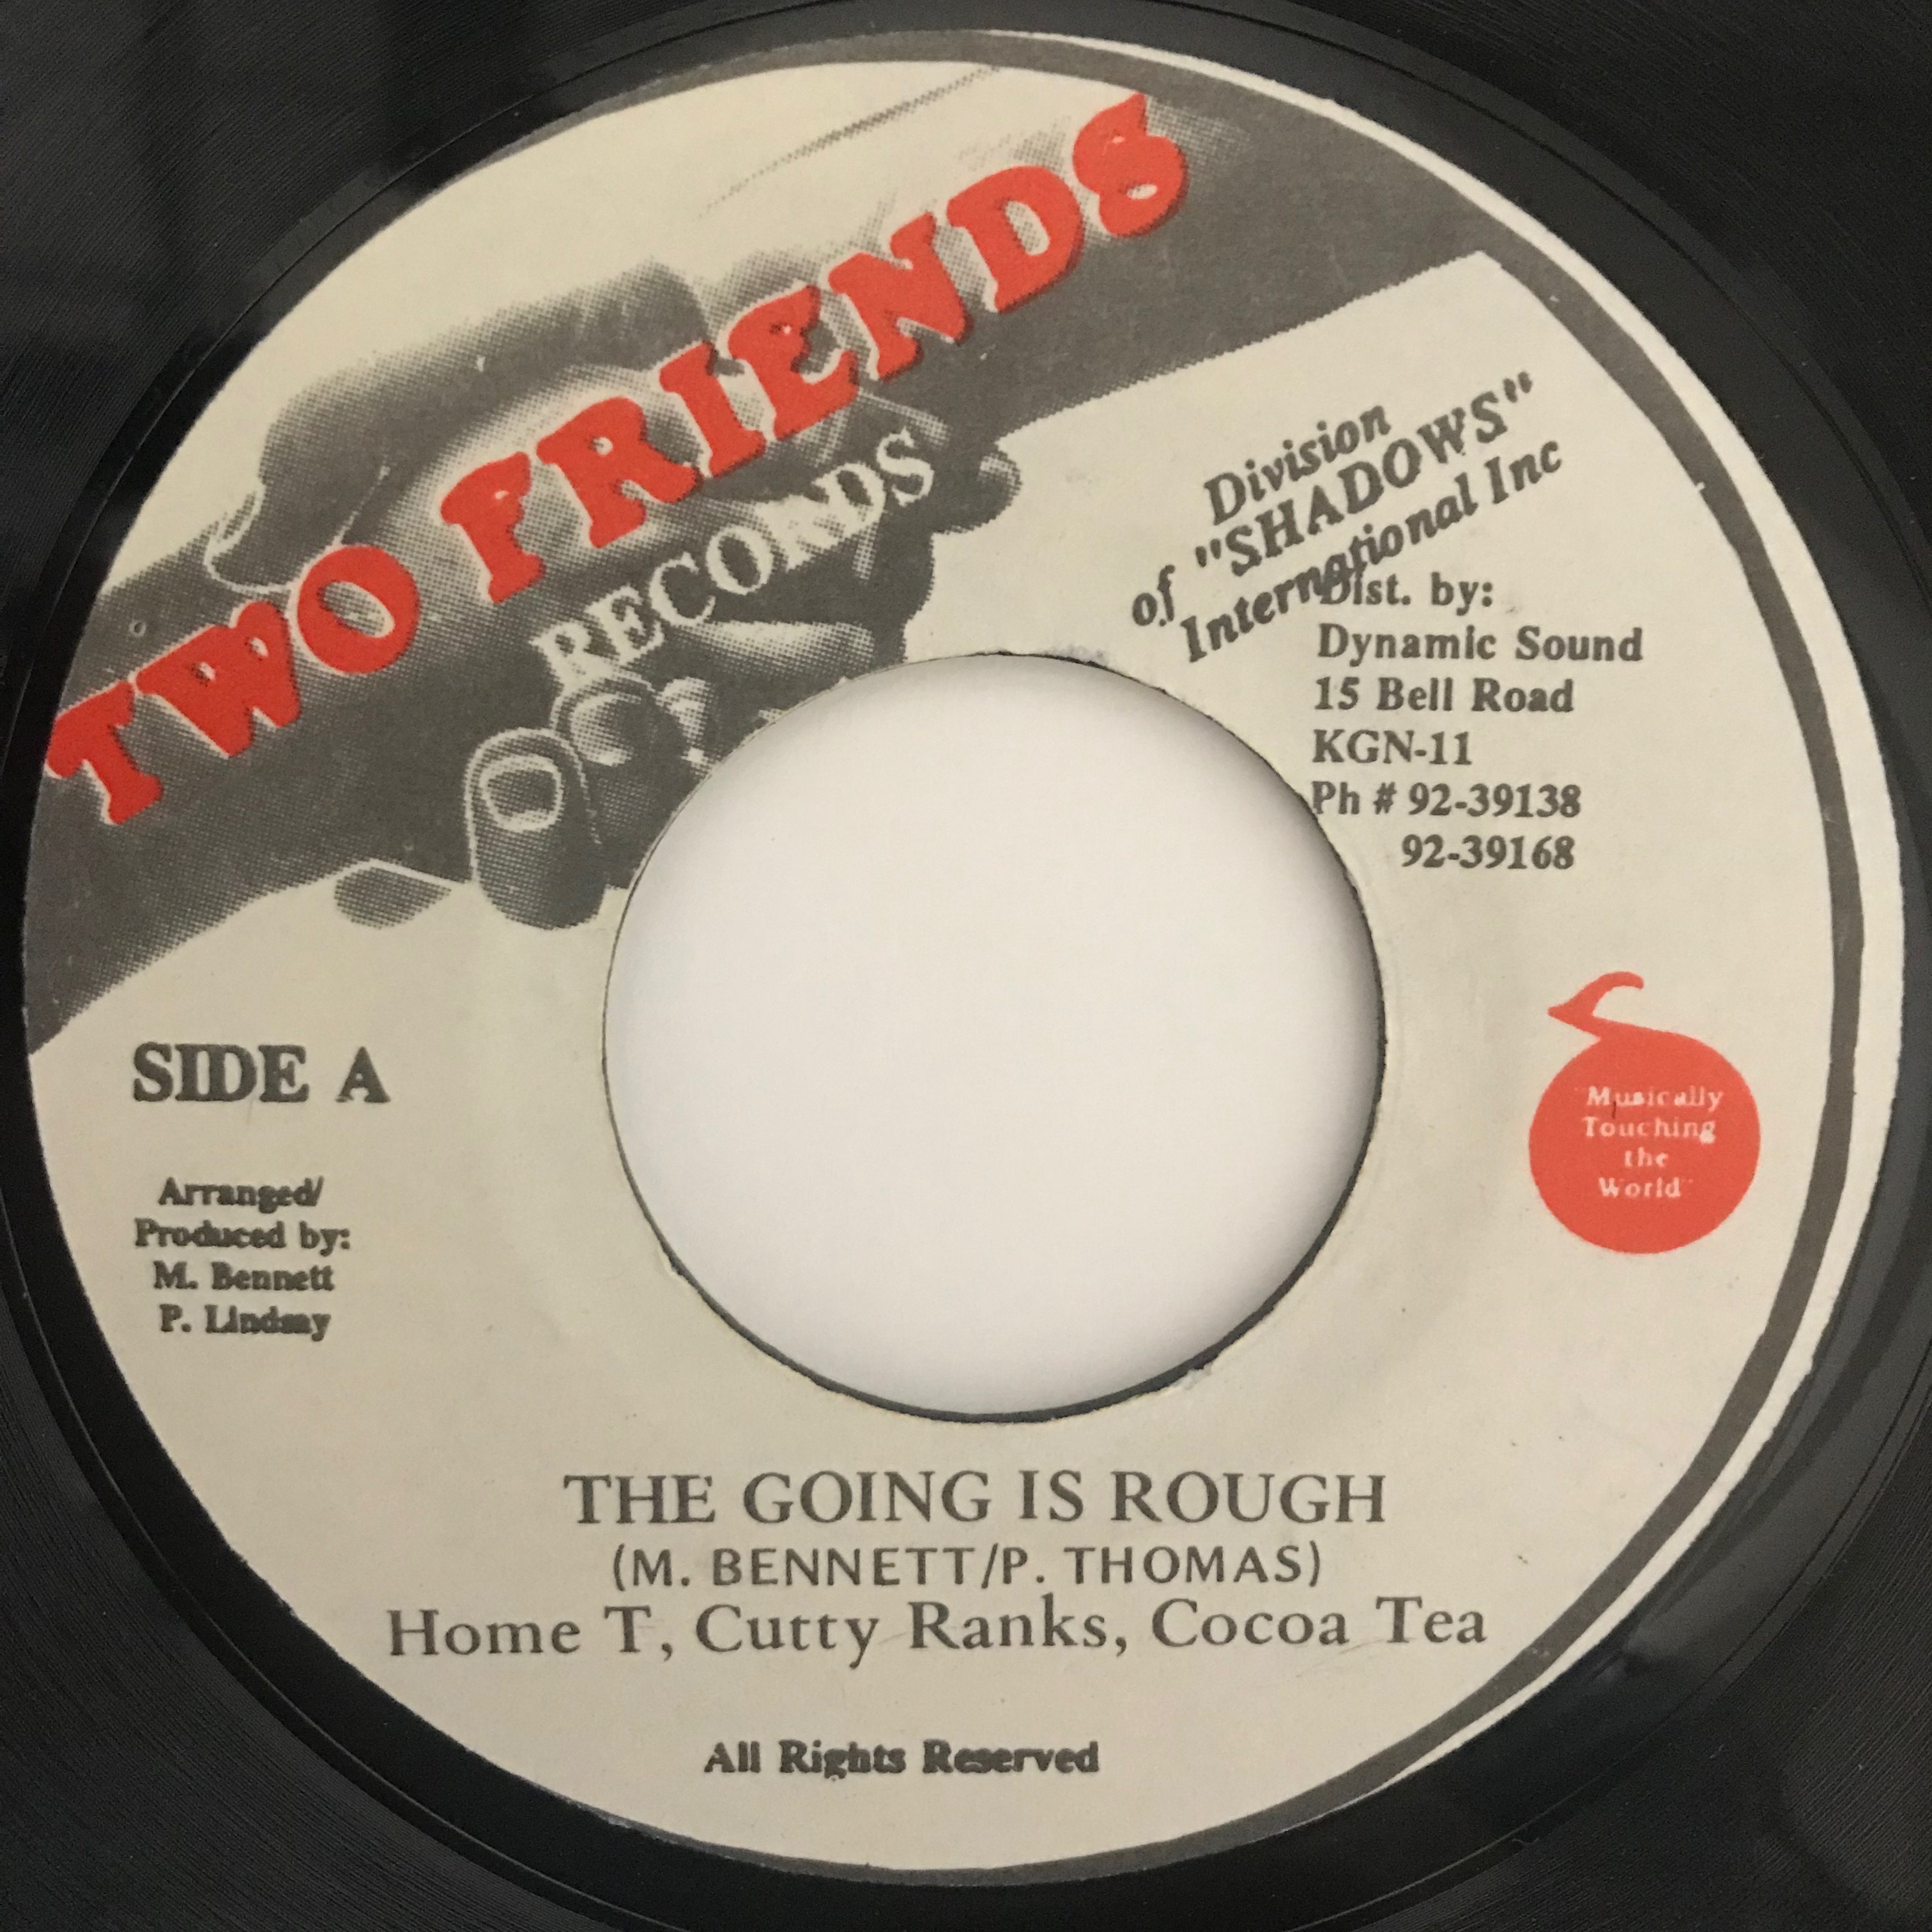 Home T, Cutty Ranks, Cocoa Tea - The Going Rough【7-10761】